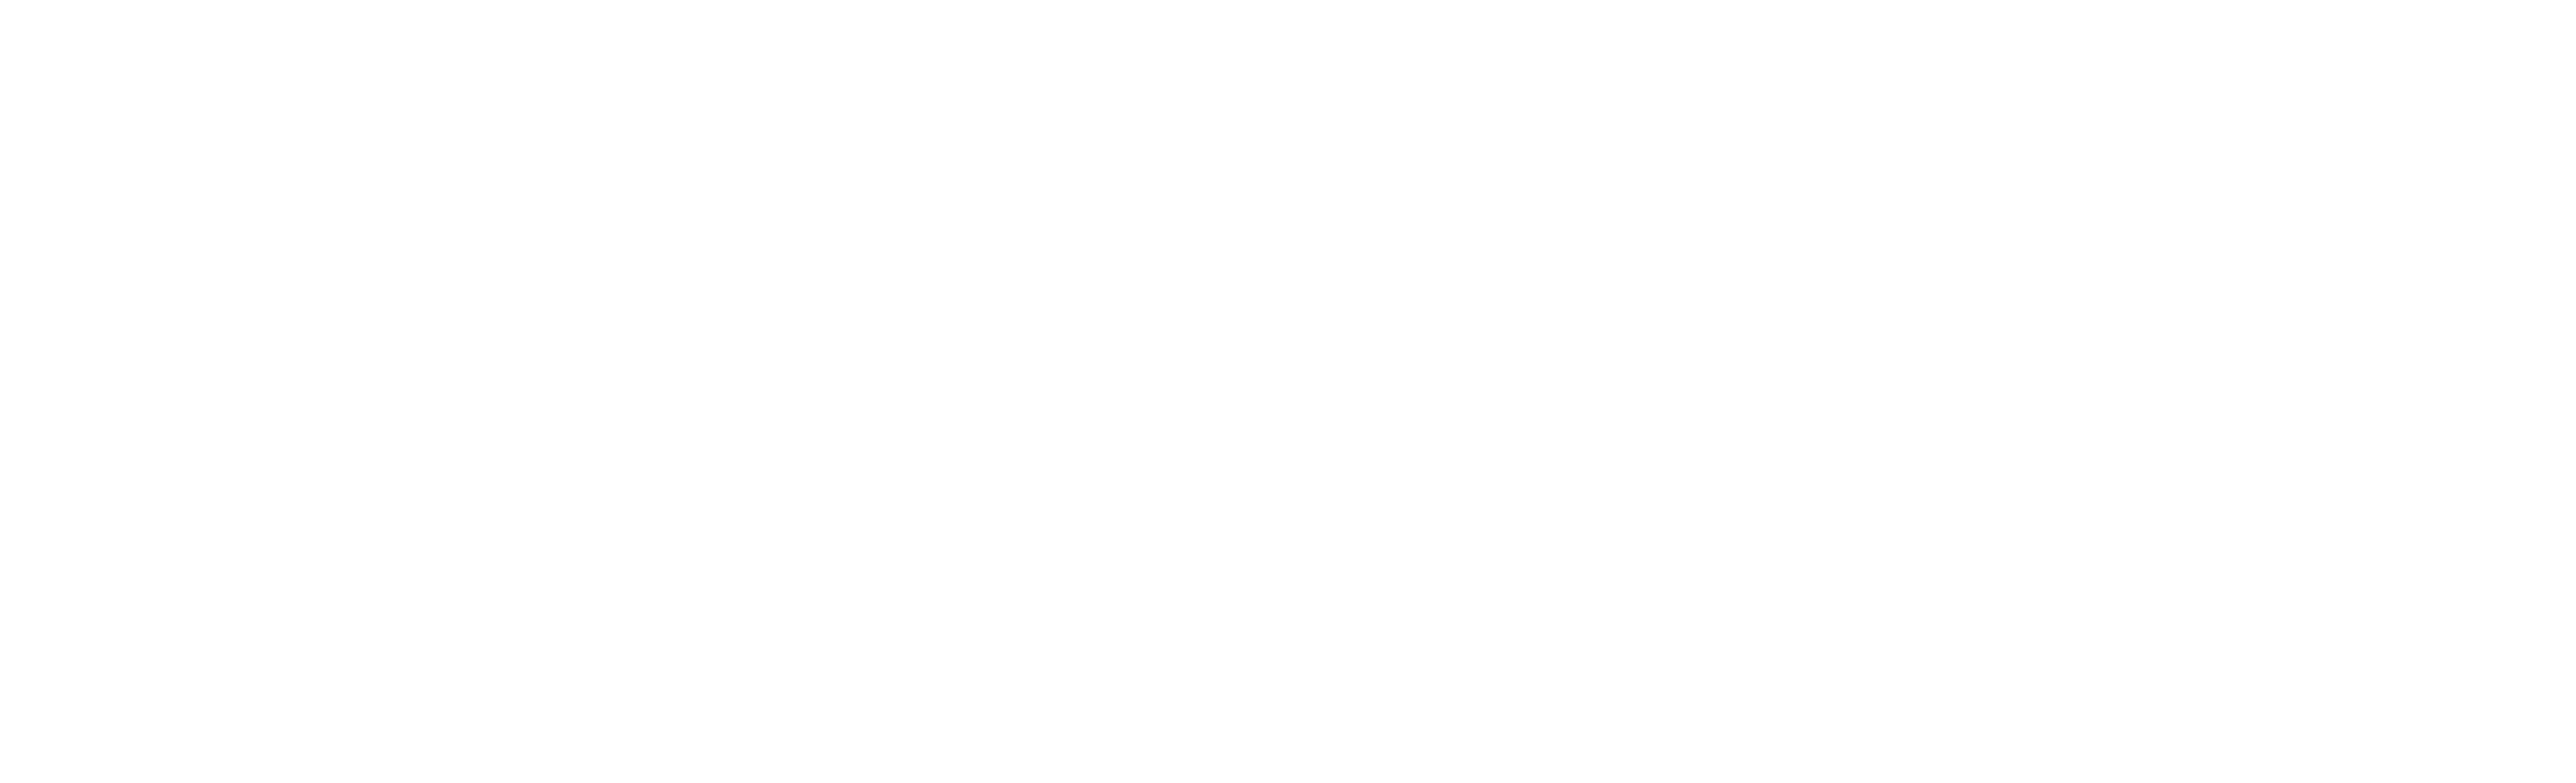 Everyday Christian Fellowship